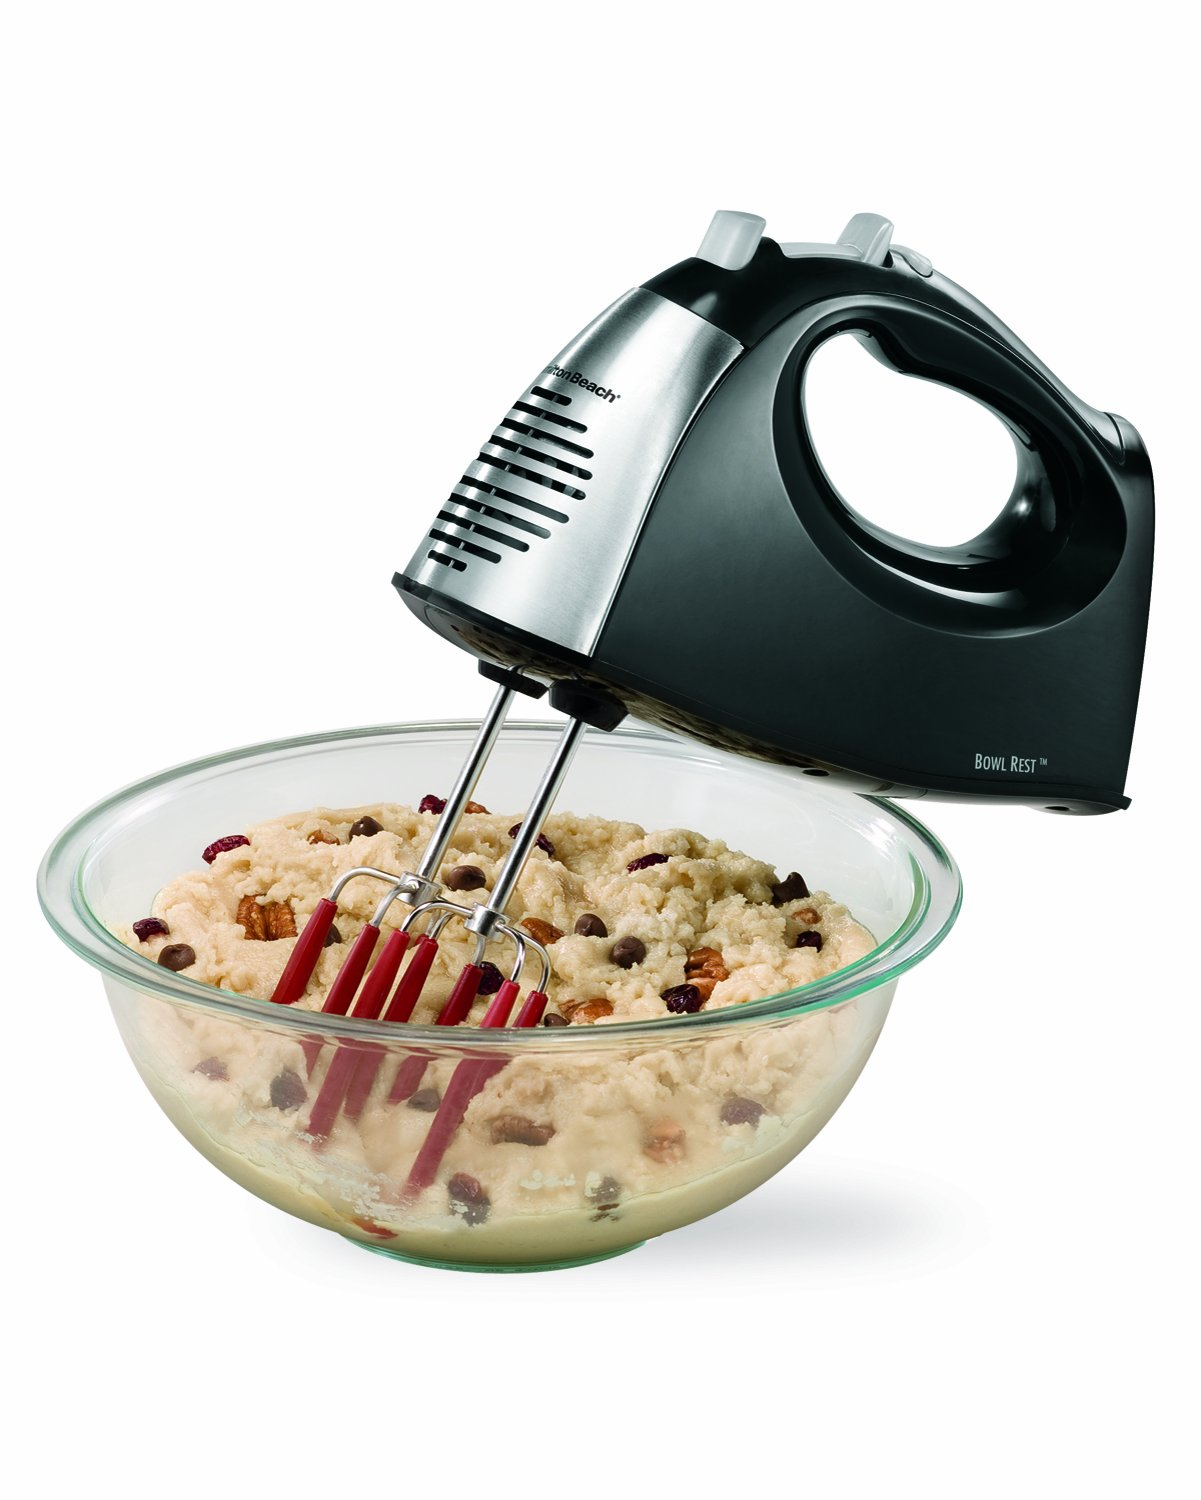 Hamilton Beach 6-Speed Hand Mixer with storage Case and Soft Srape